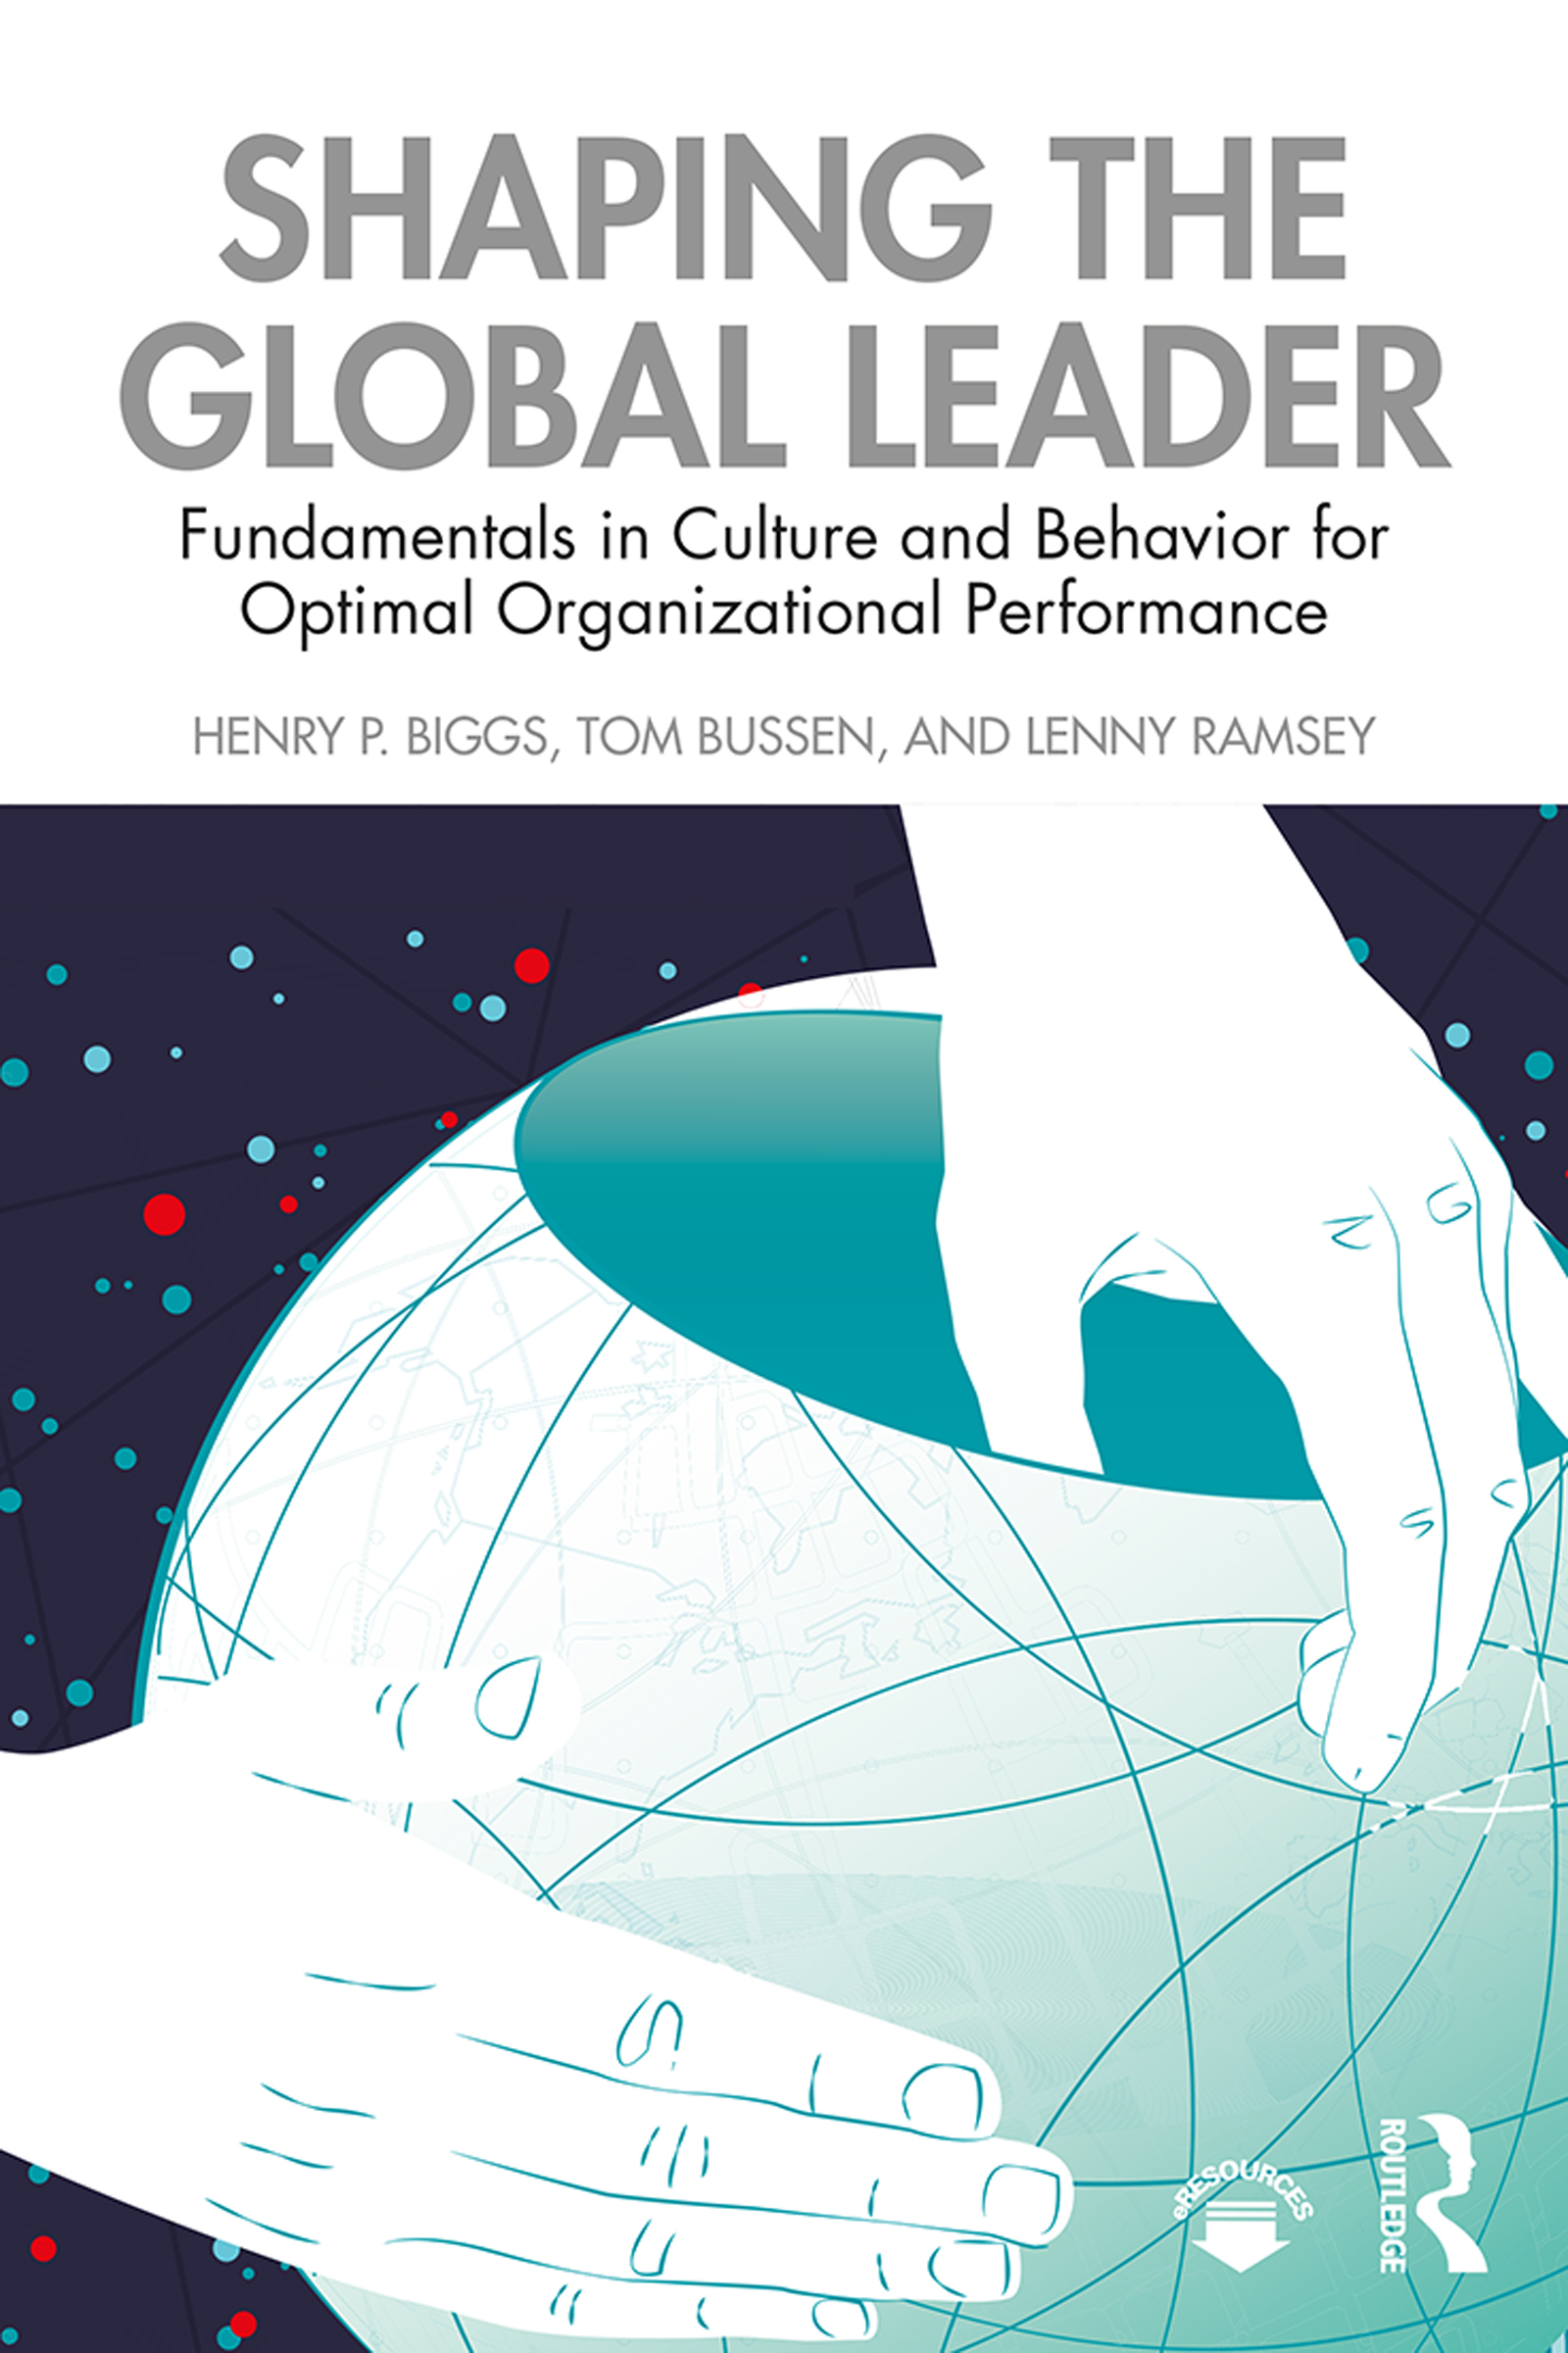 Shaping the Global Leader: Fundamentals in Culture and Behavior for Optimal Organizational Performance book cover